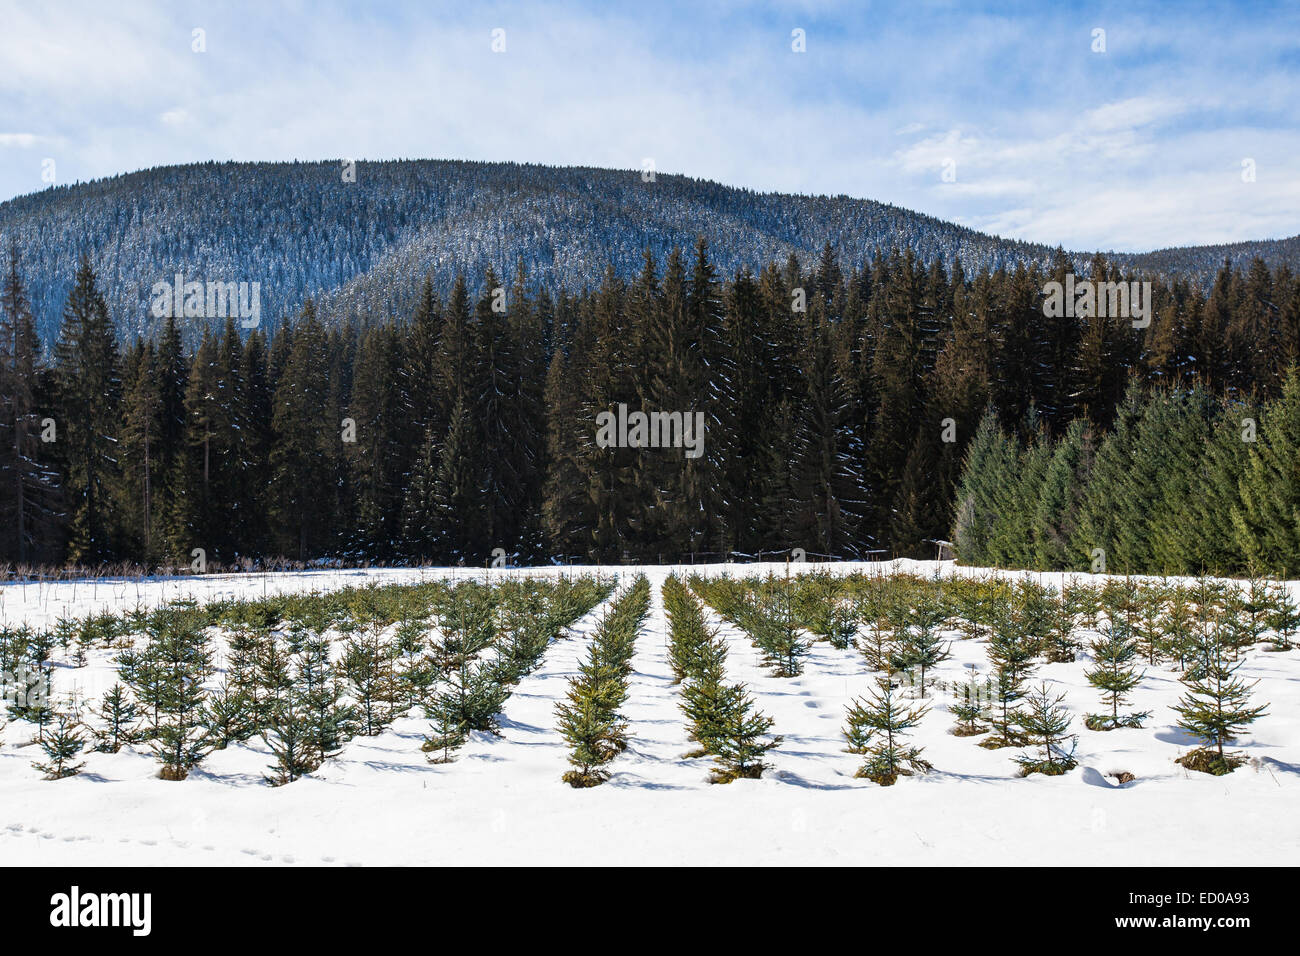 Nursery for young pine and fir trees. - Stock Image